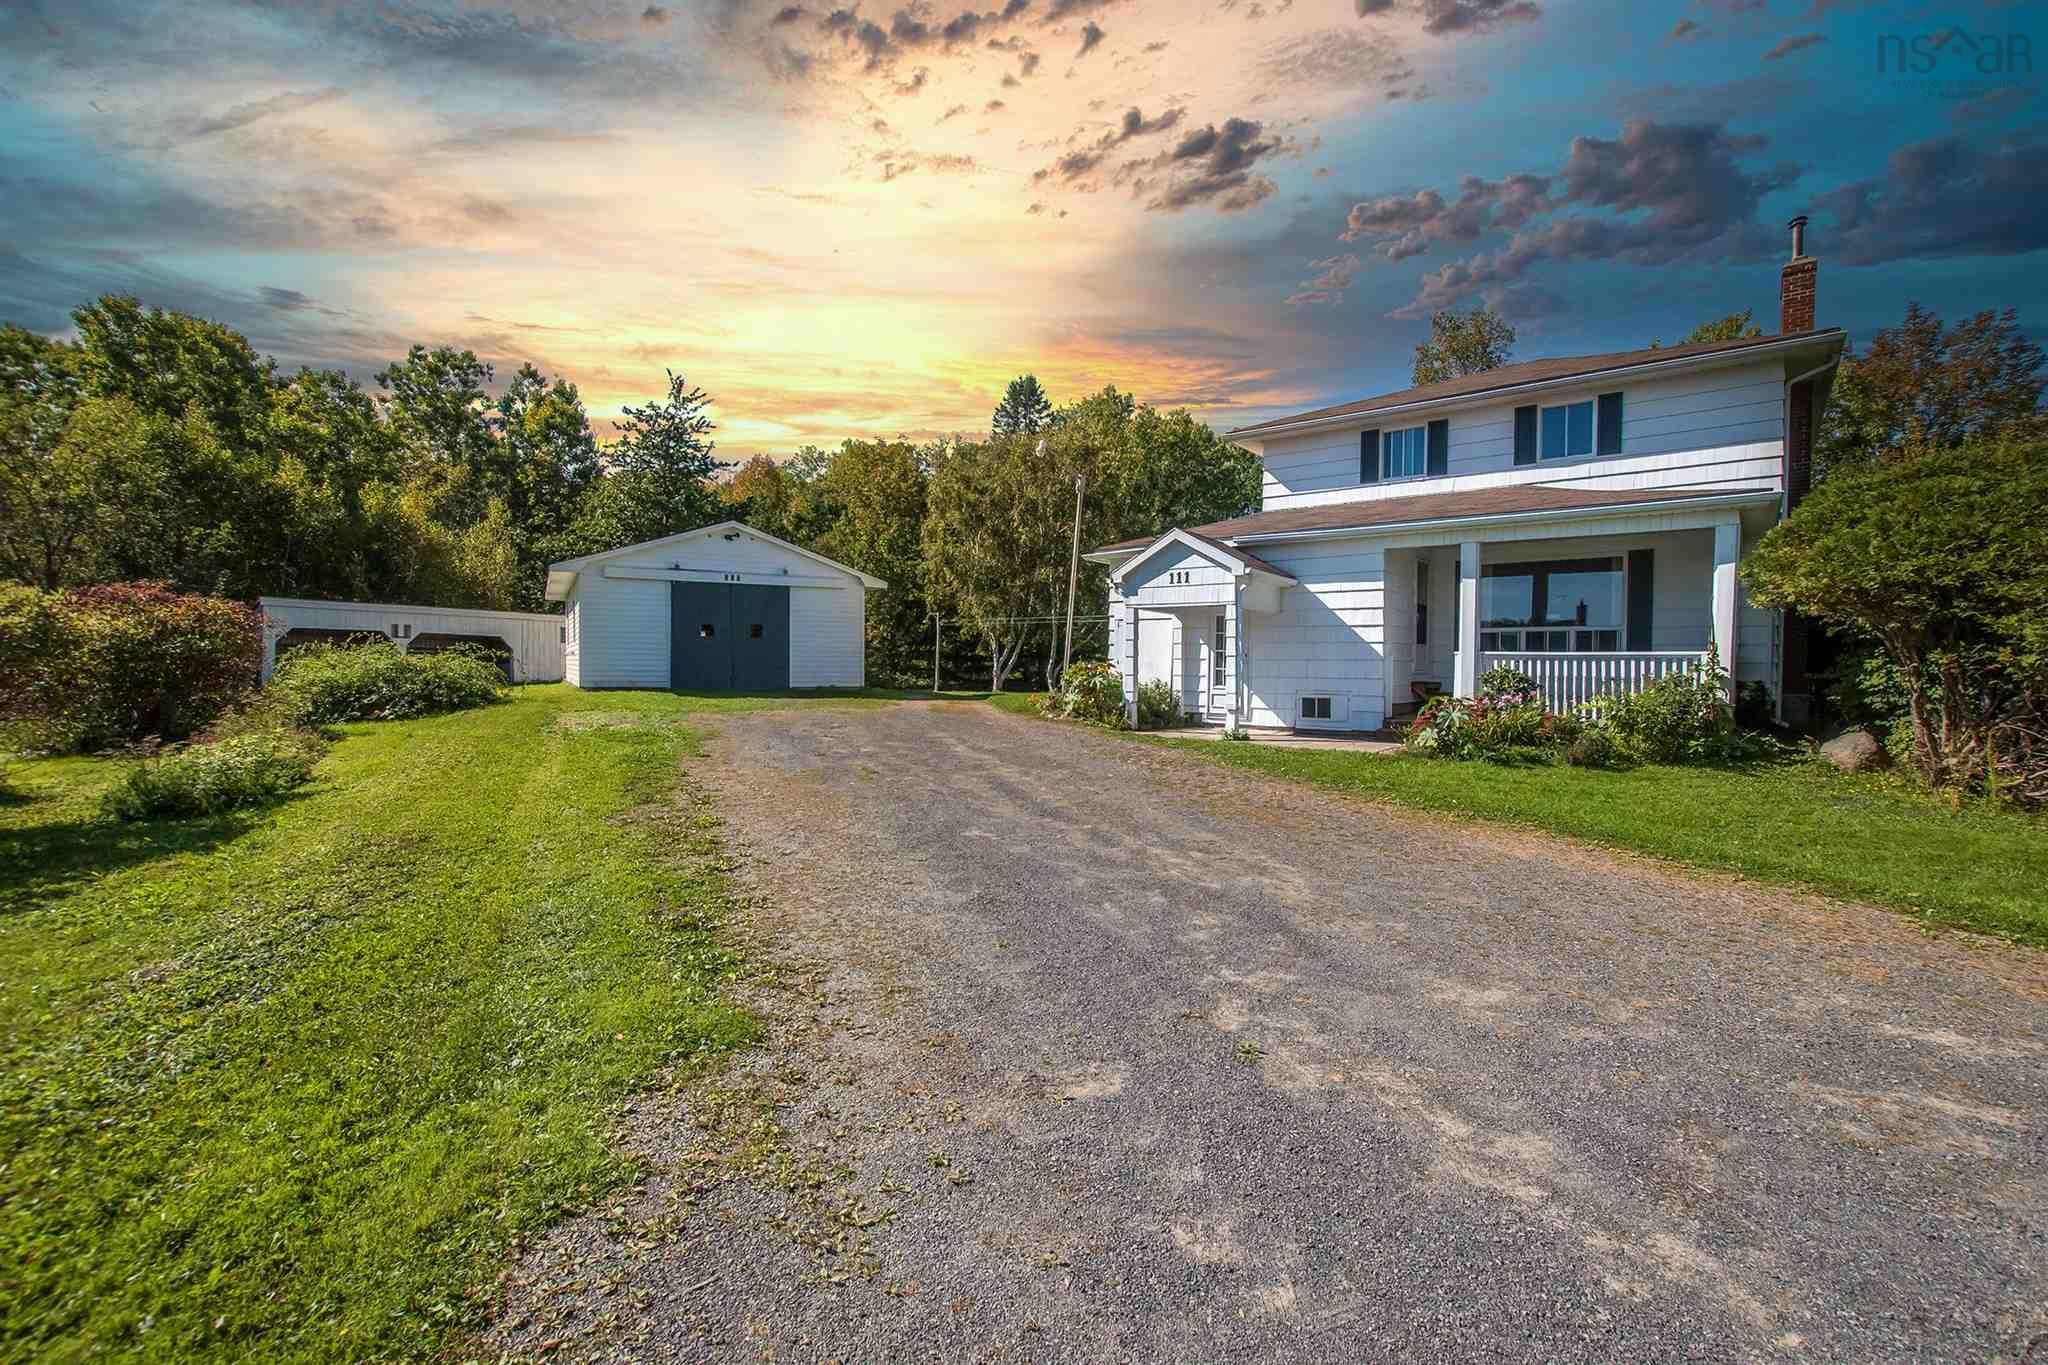 Main Photo: 111 Aylward Road in Falmouth: 403-Hants County Residential for sale (Annapolis Valley)  : MLS®# 202125408